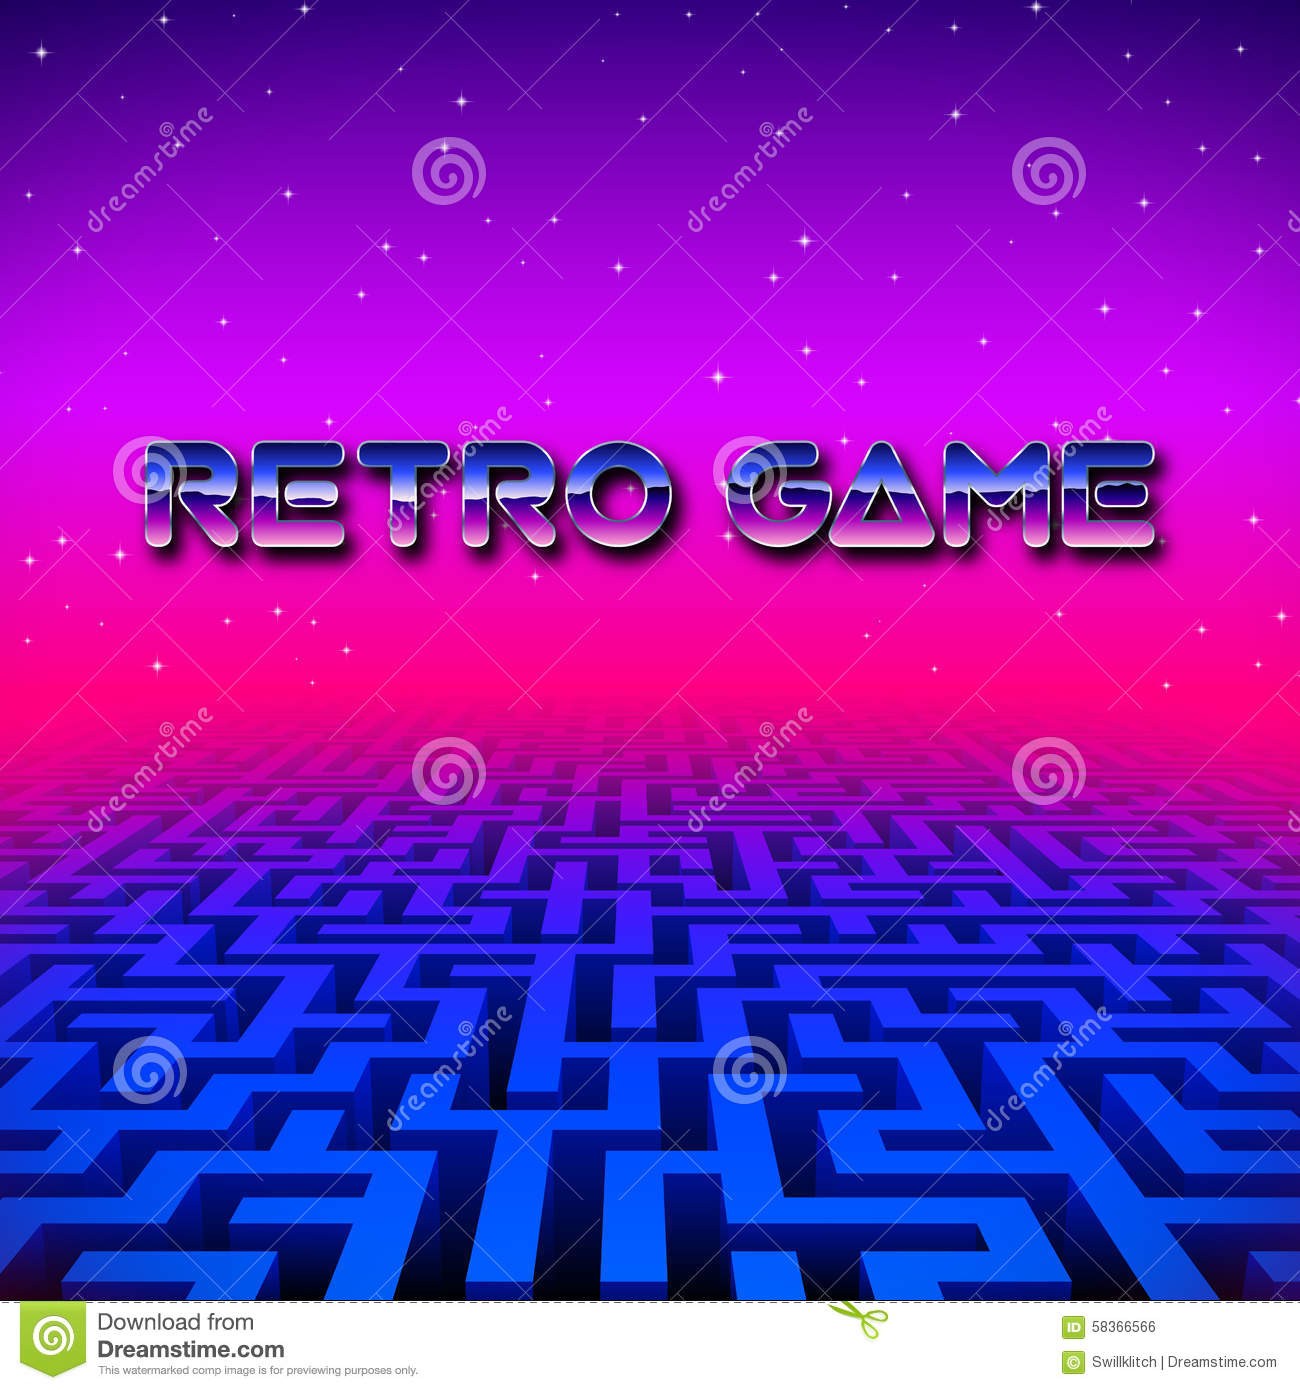 Retro gaming hipster neon landscape with labyrinth